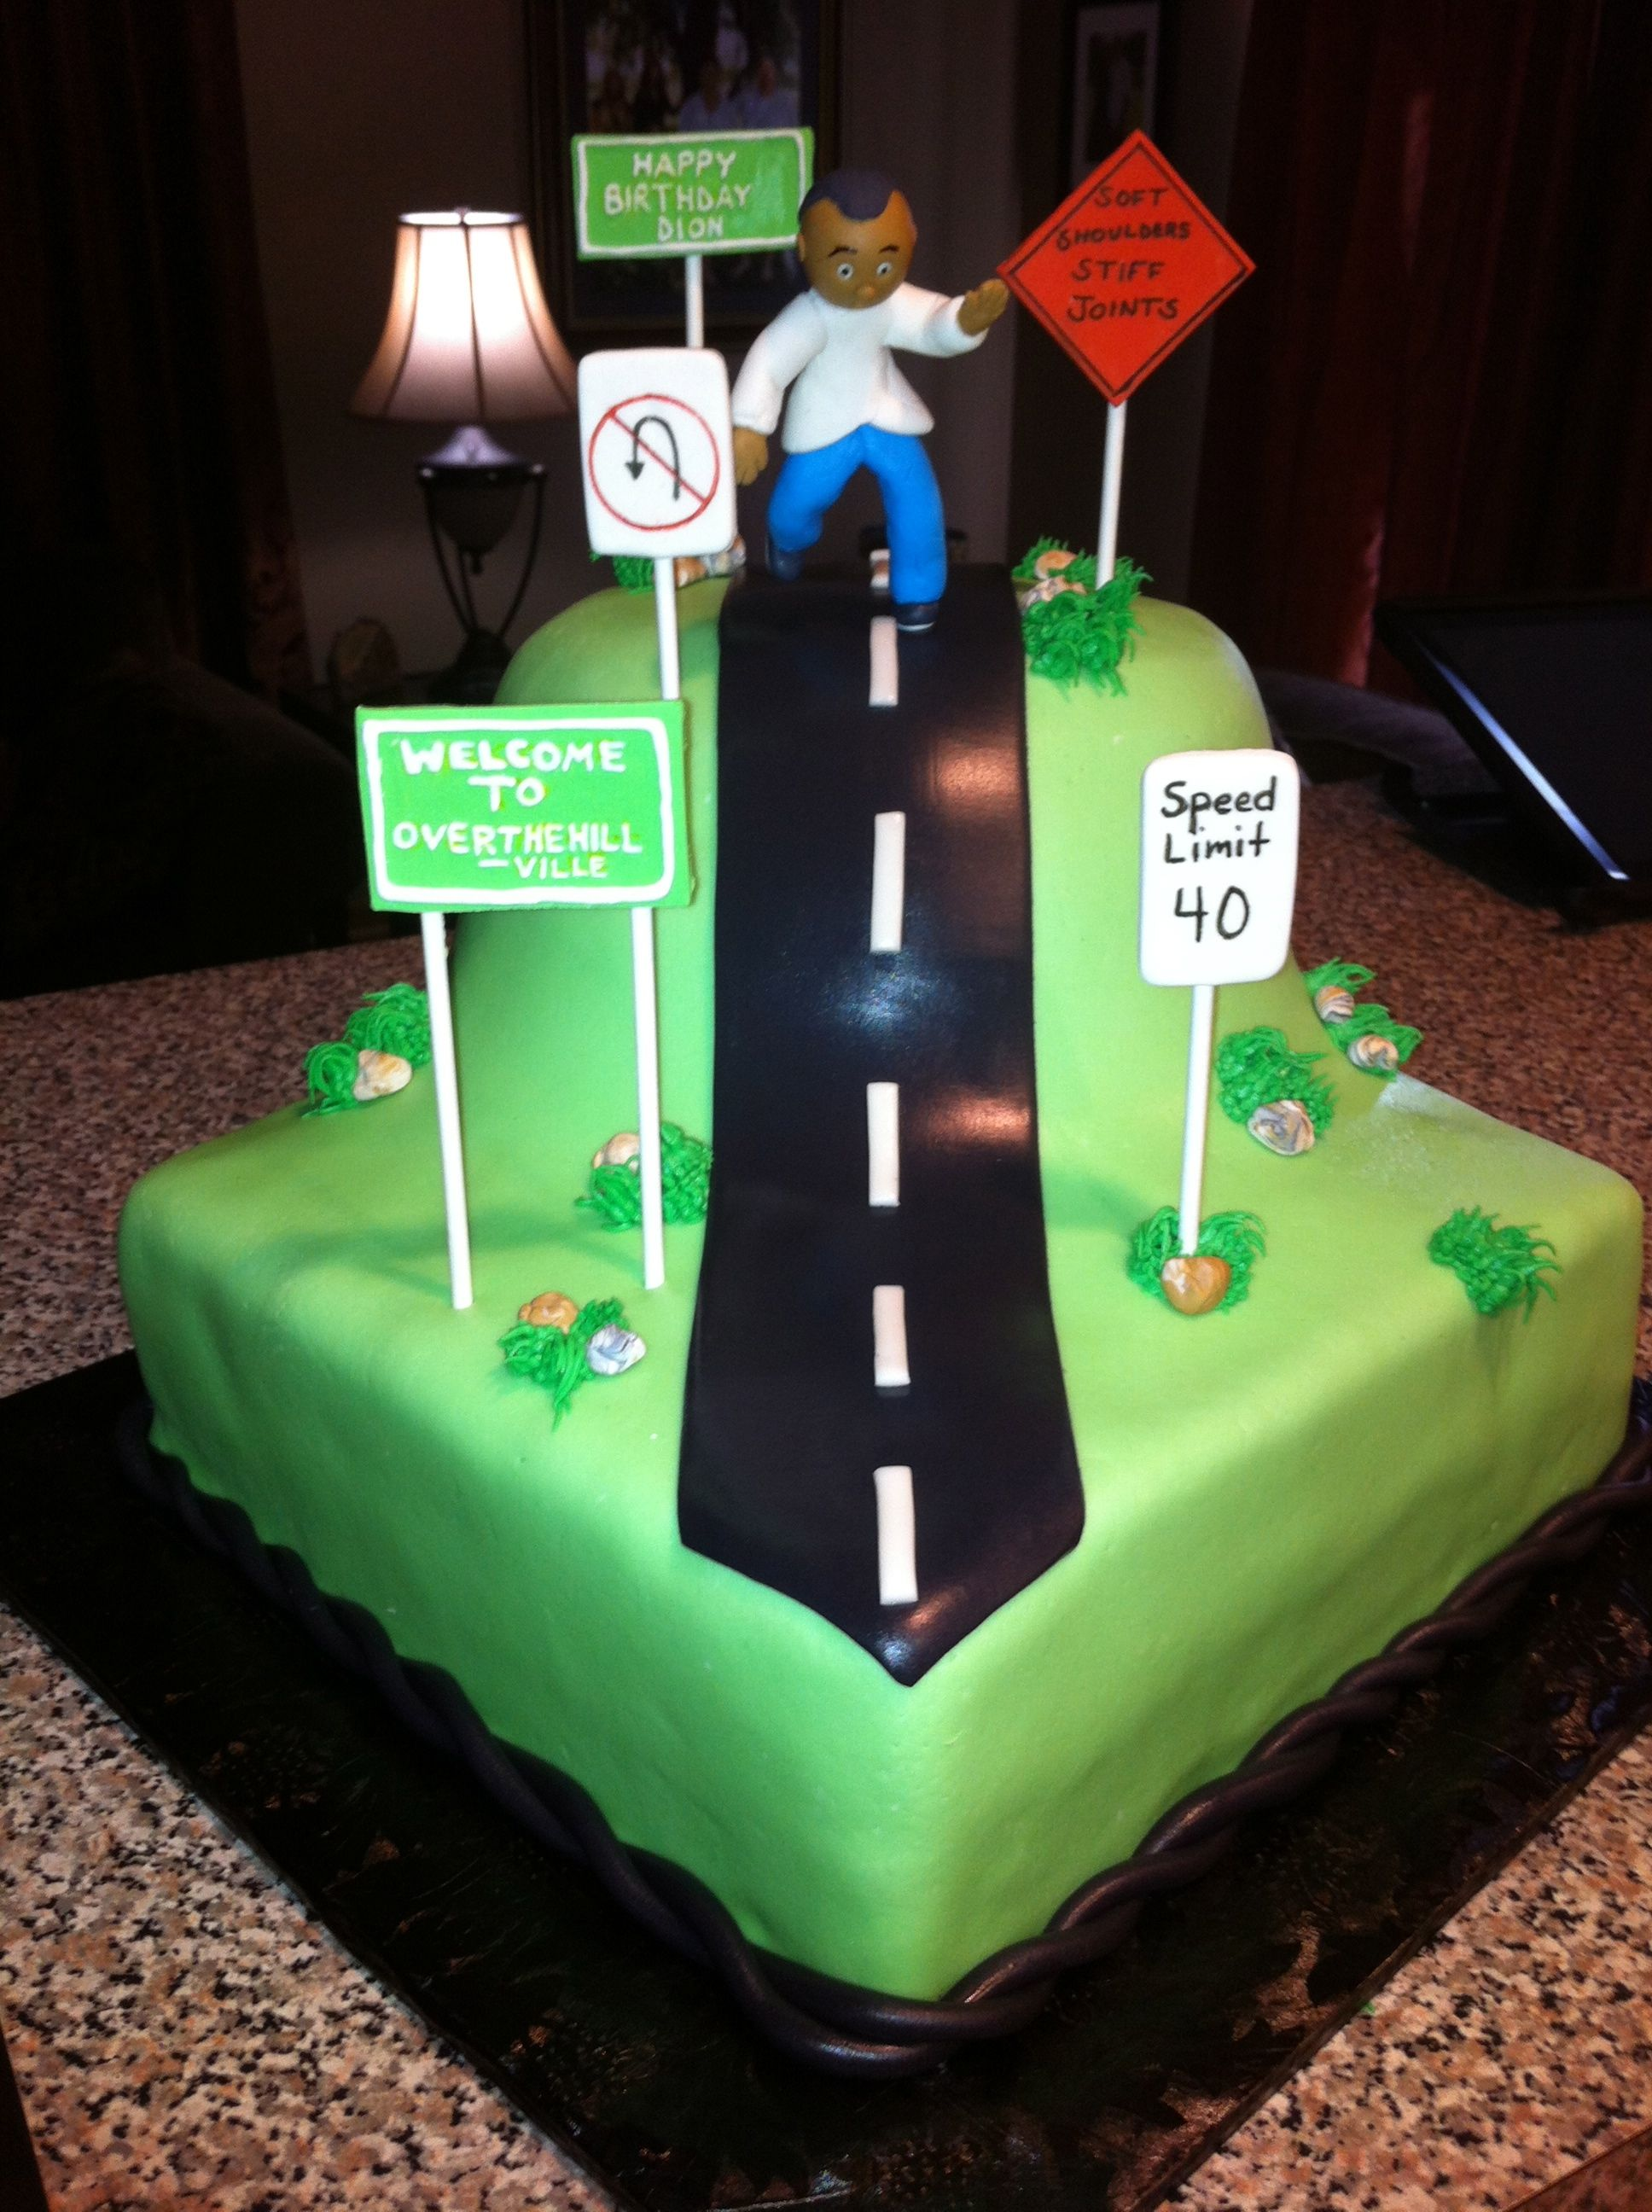 Over the hill over the hill cakes 40th birthday cakes